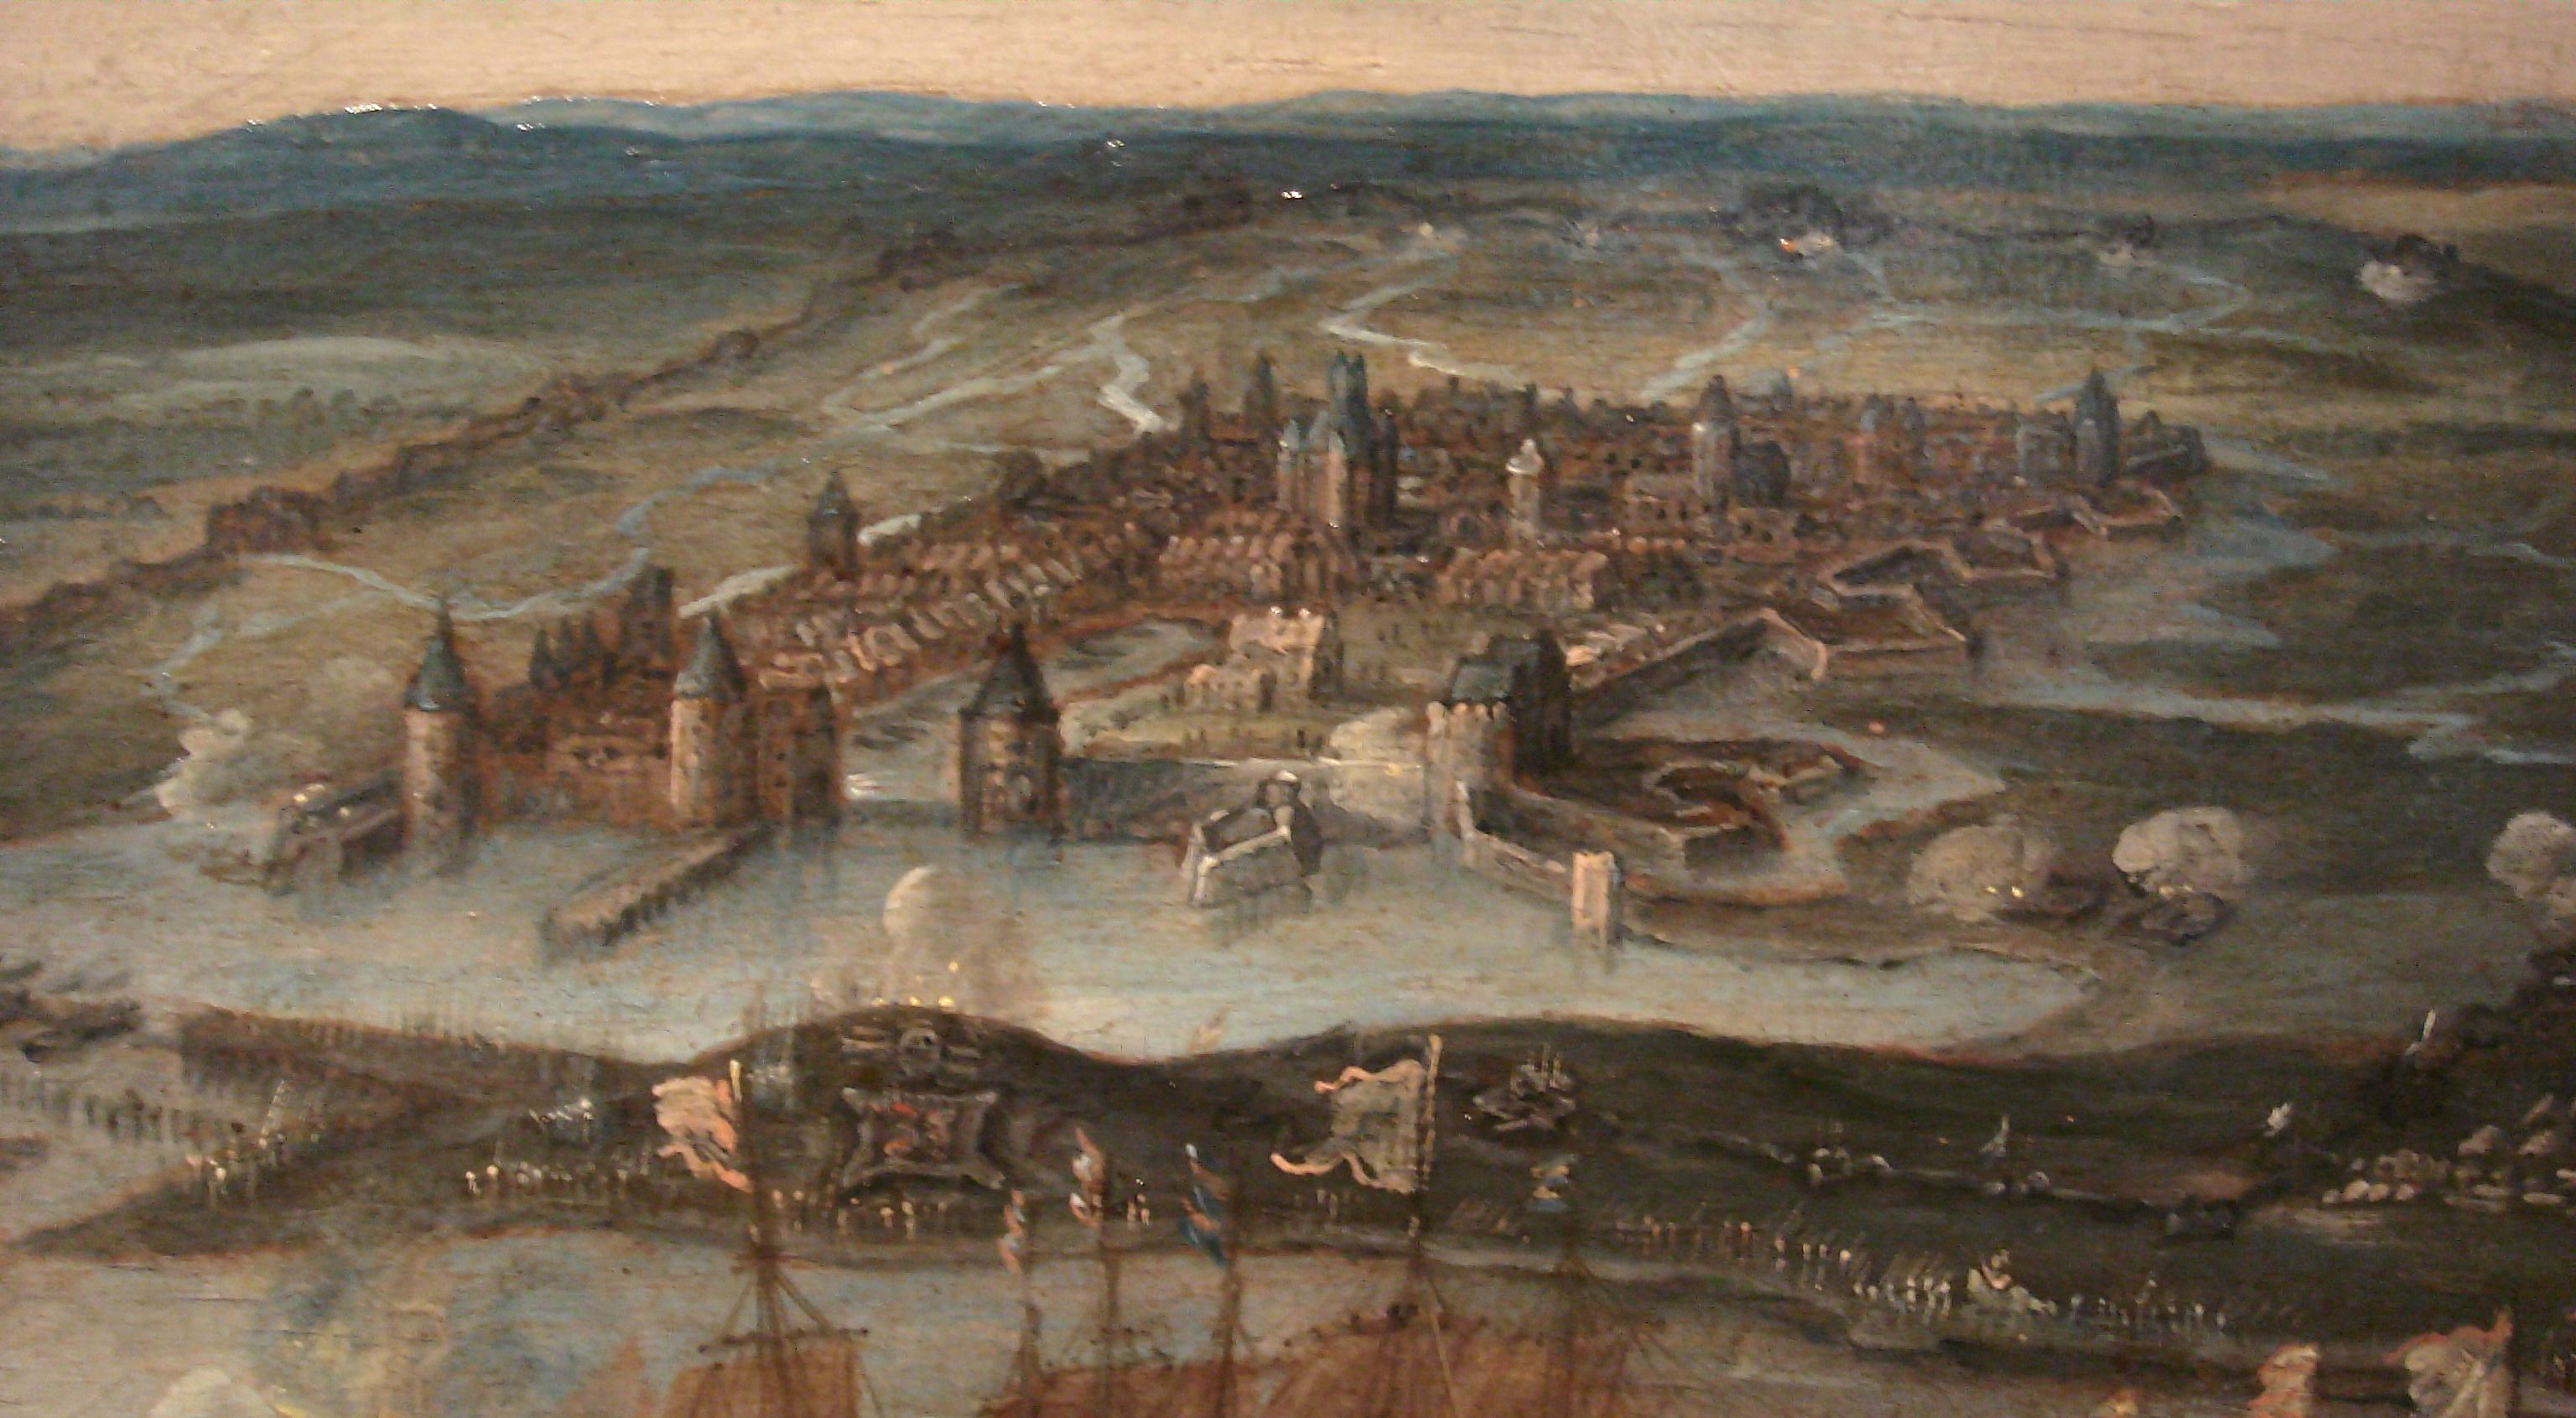 File:La Rochelle during the 1628 siege.jpg